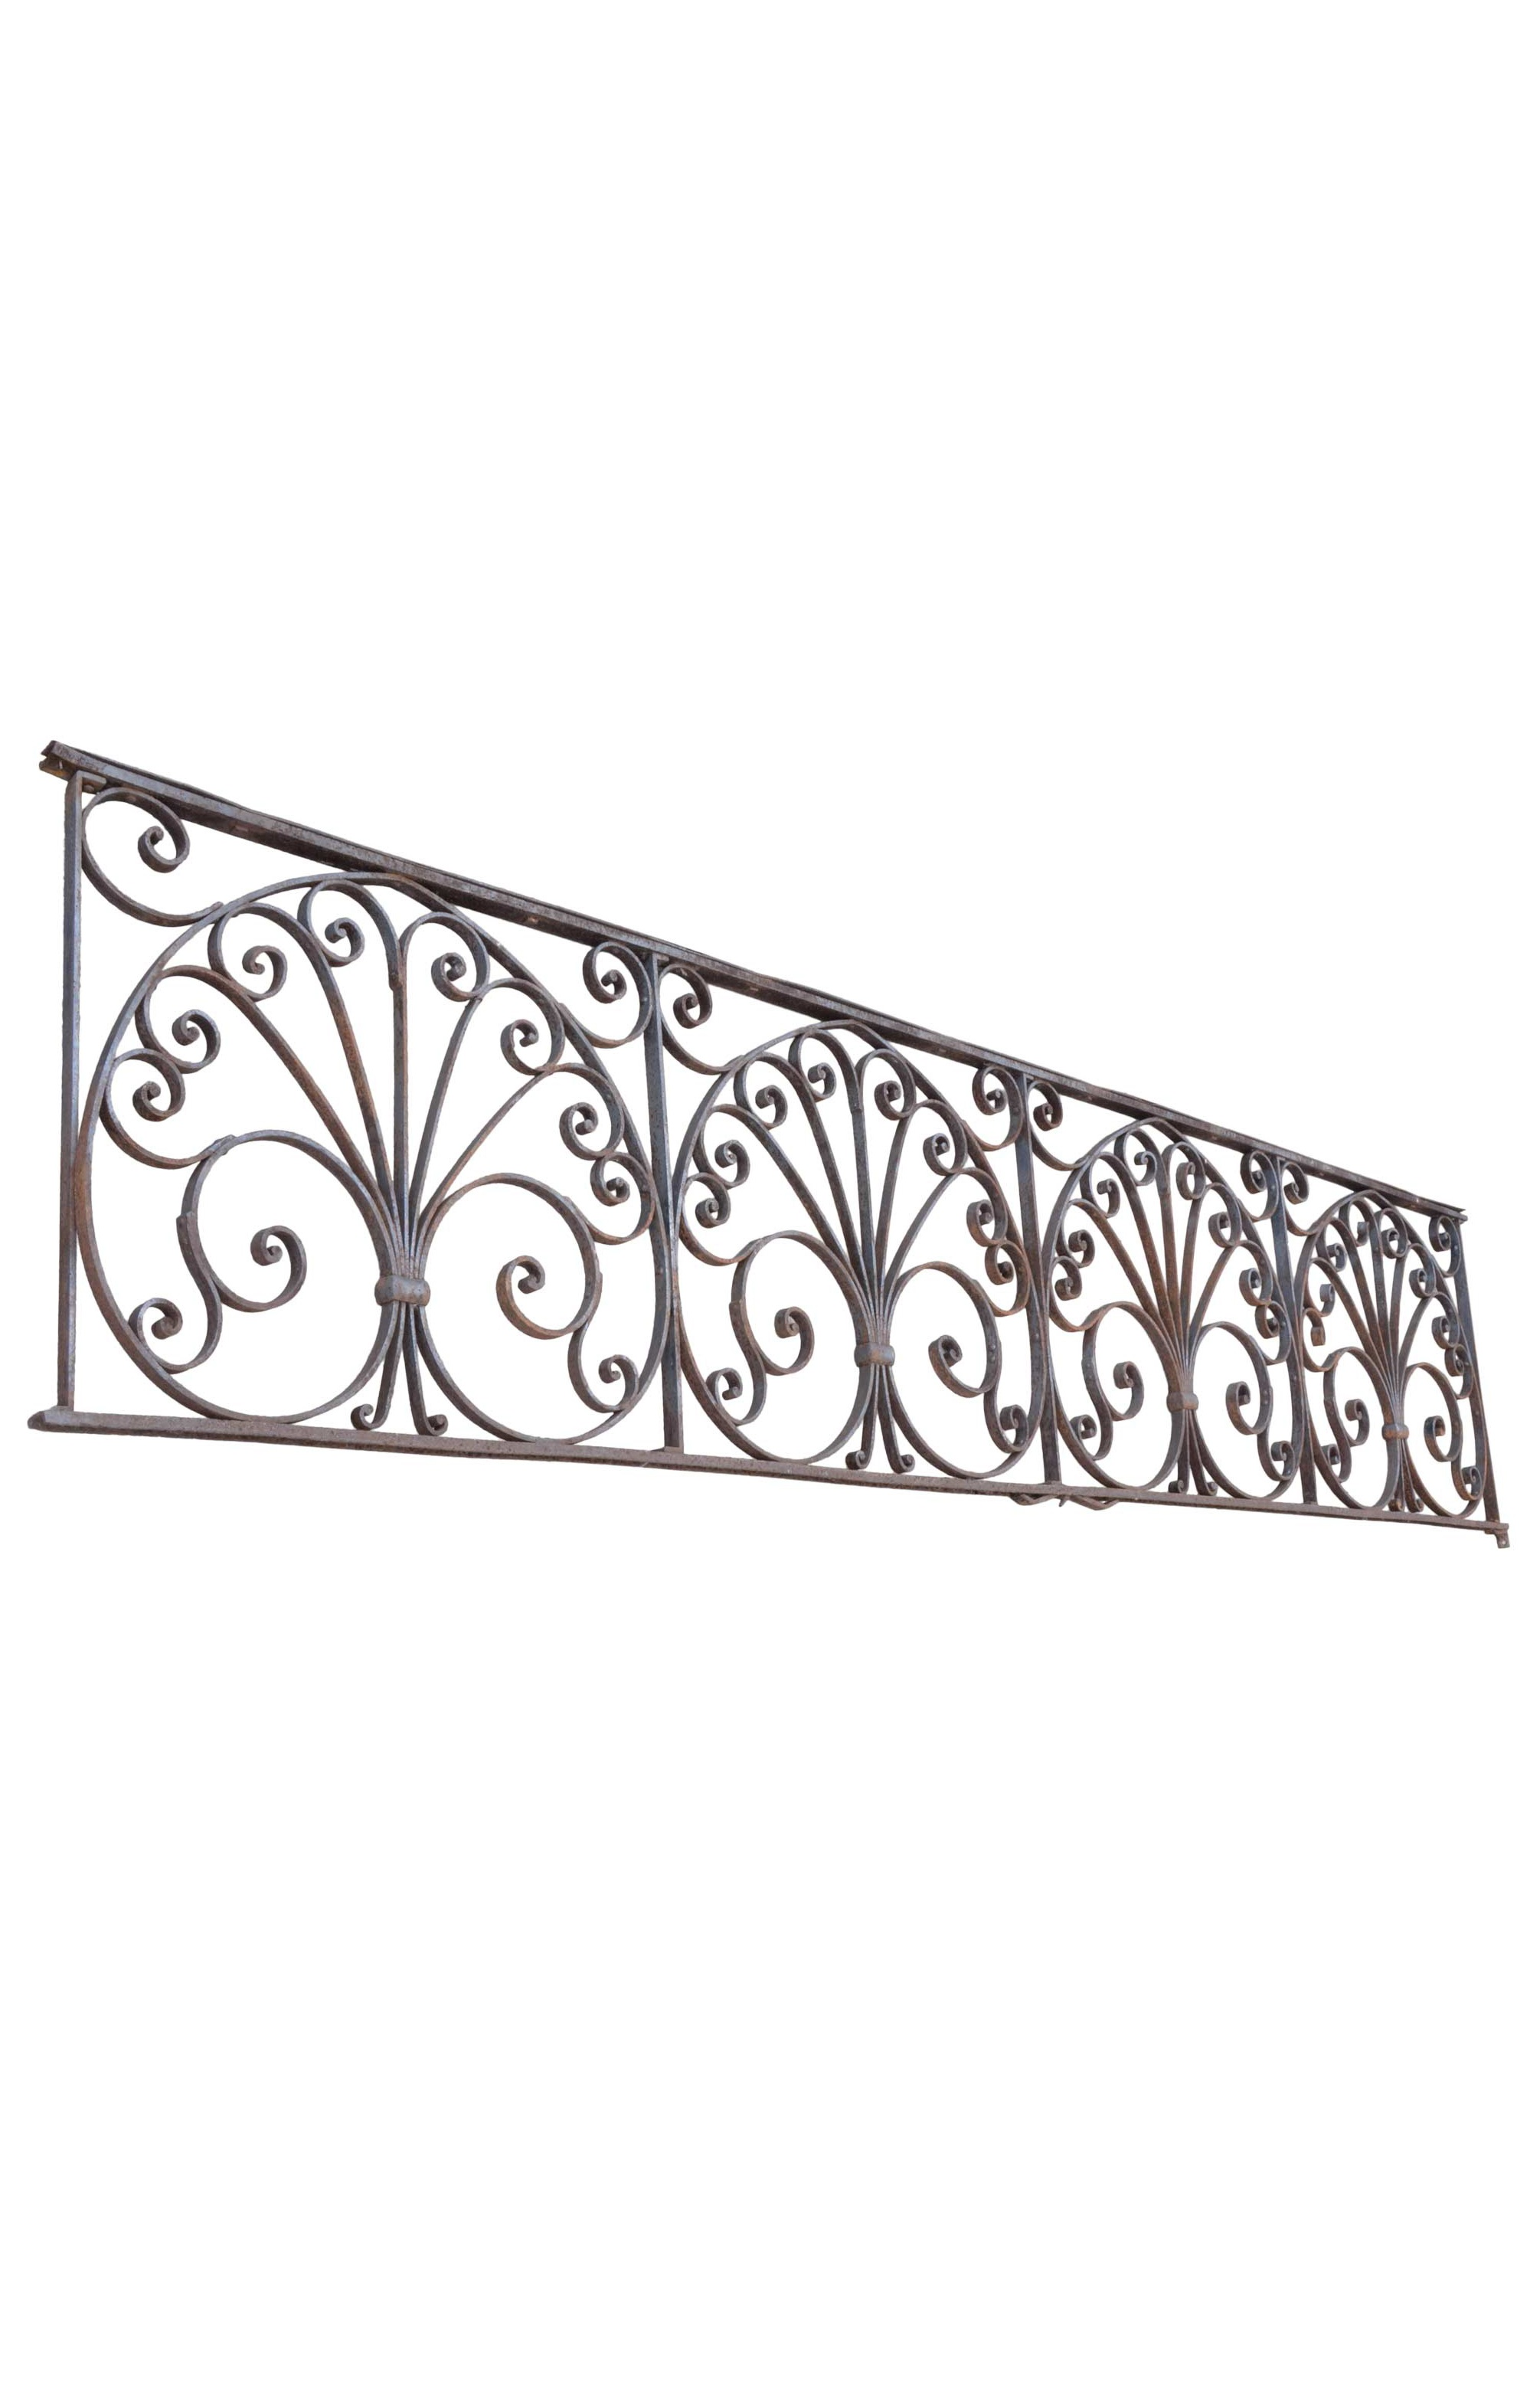 IRON RAILINGS WITH DECORATIVE PALMETTE SCROLLWORK    Click here for more information